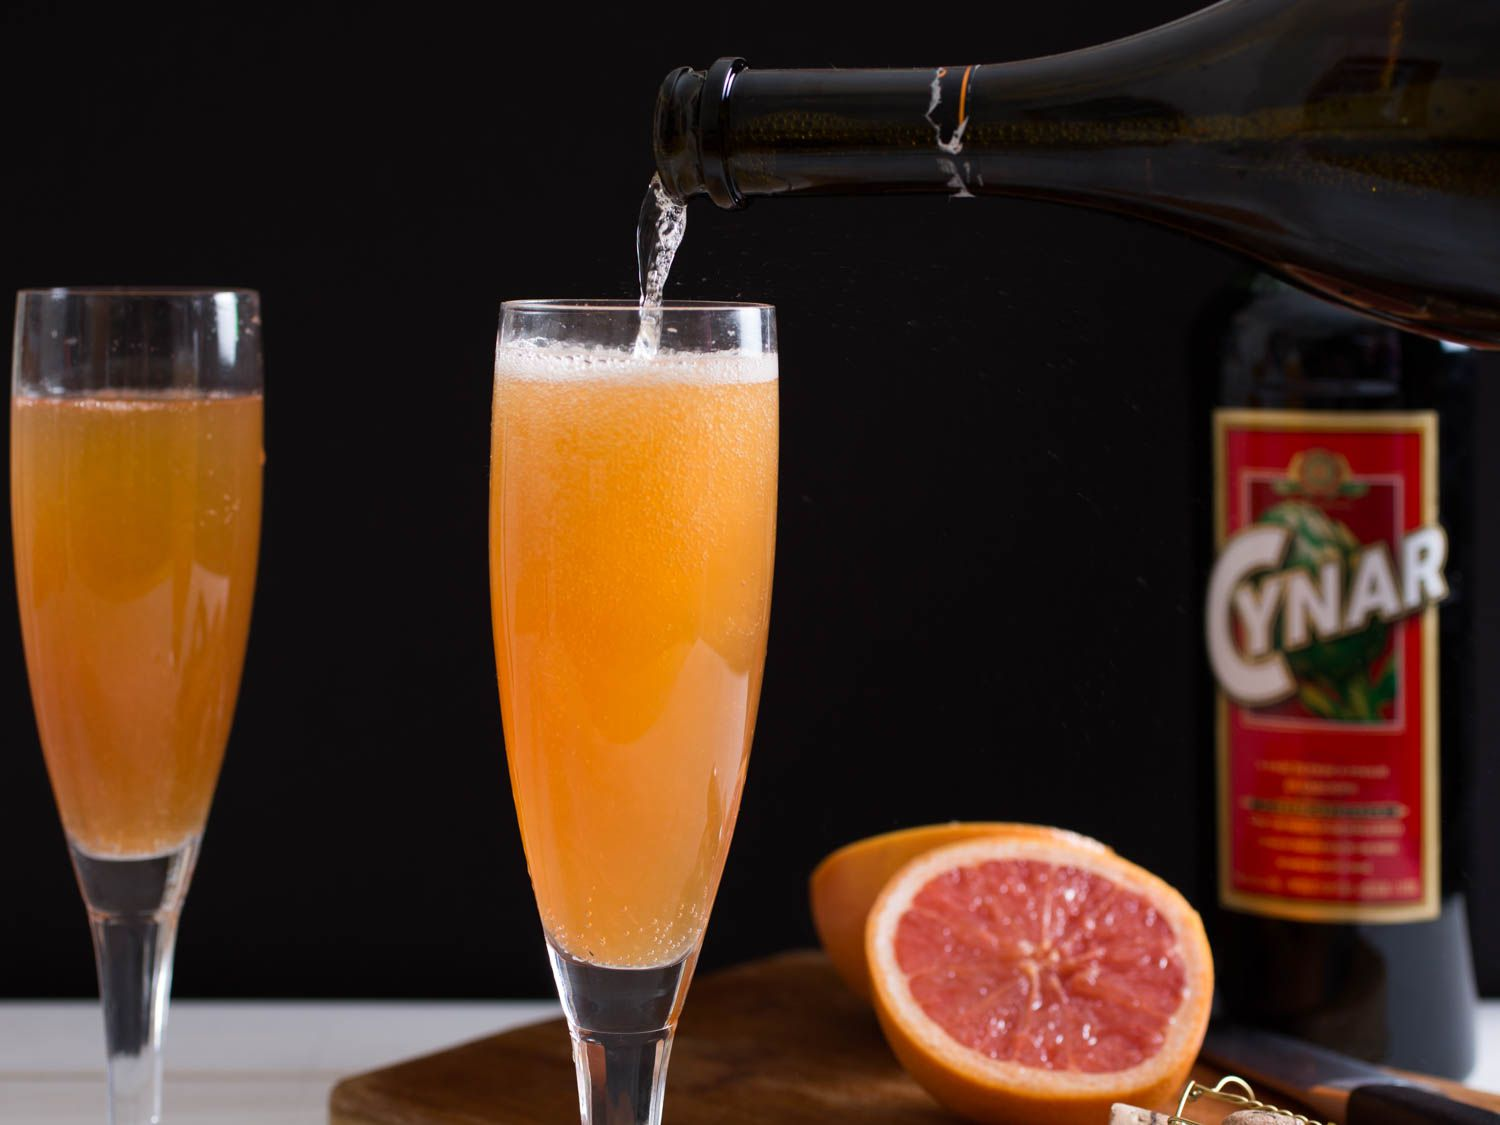 20150618-three-ingredient-cocktails-bitter-mimosa-vicky-wasik